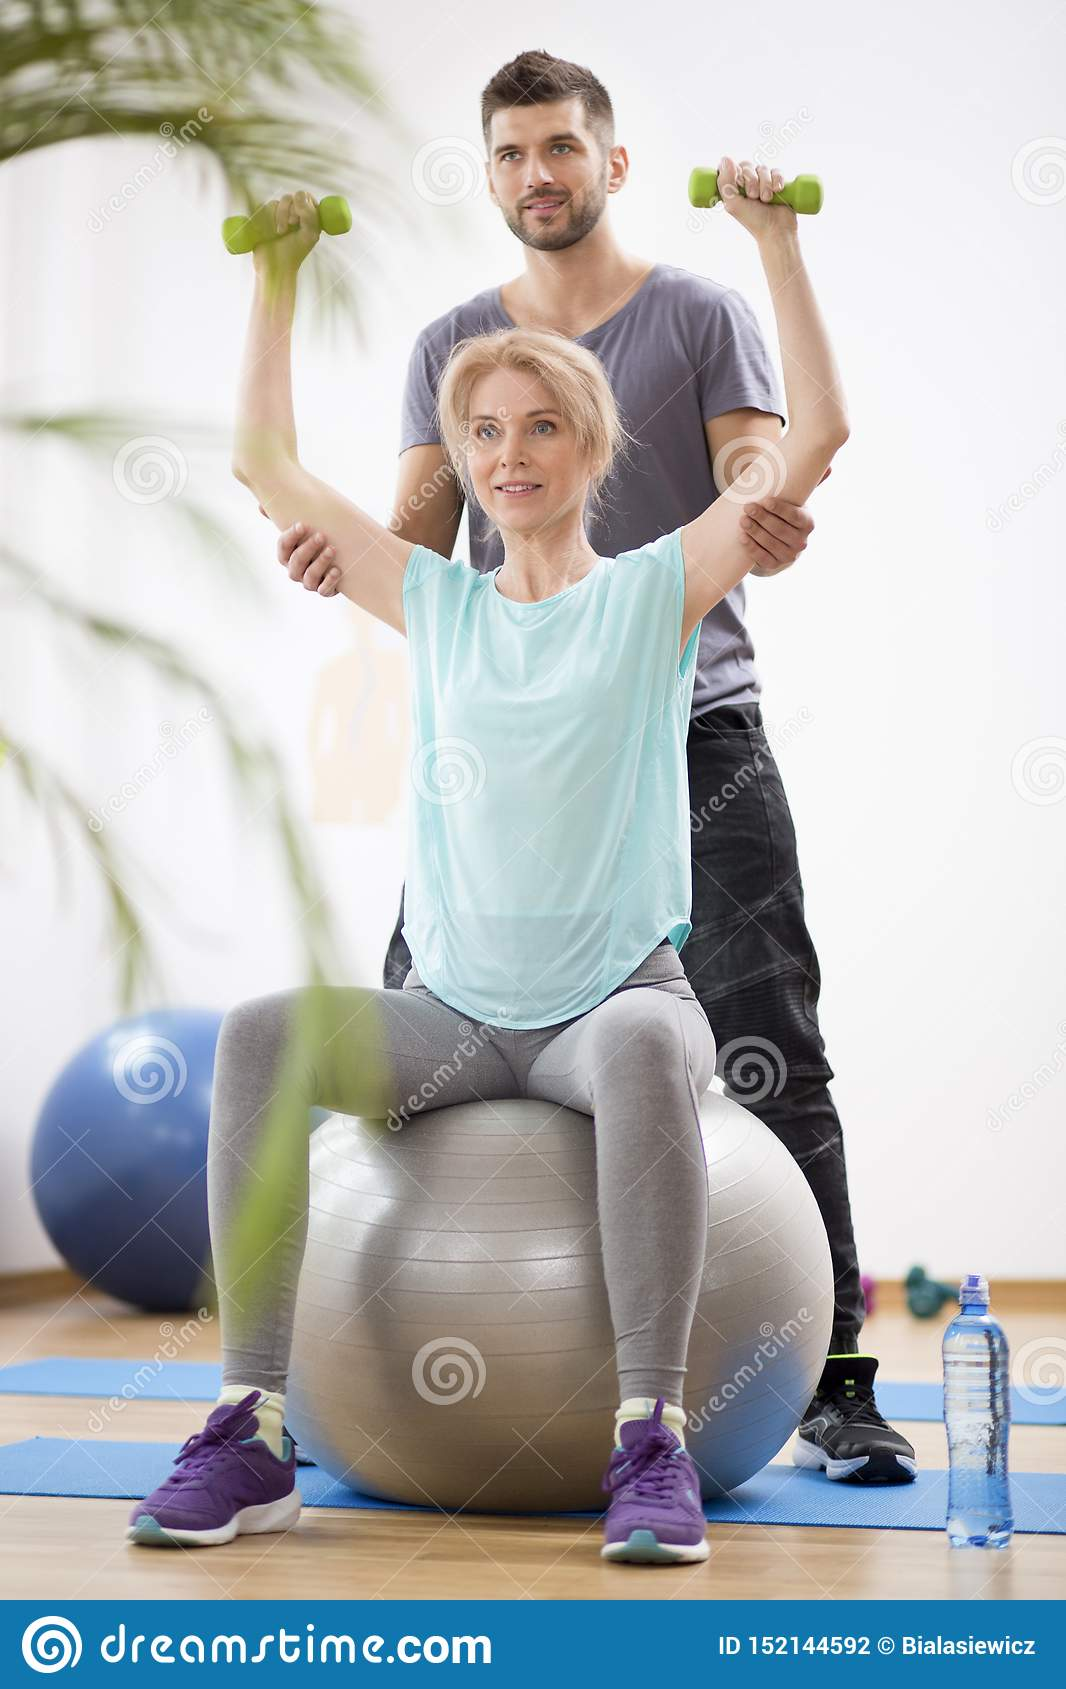 Middle Age Blond Woman Exercising On Gymnastic Ball During